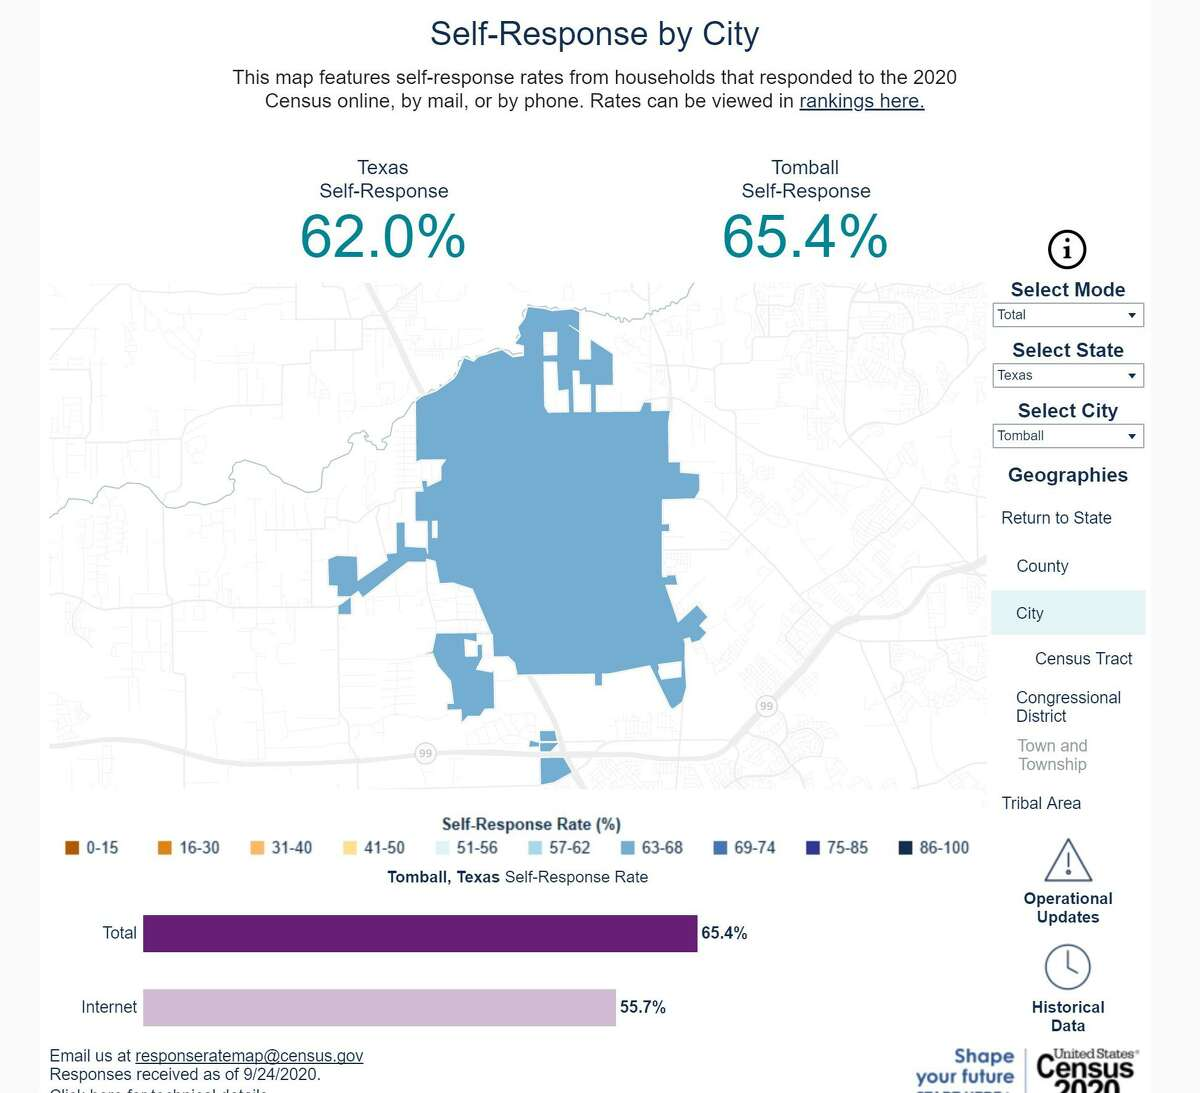 Tomball is .3 percent over their self-response rate from 2010 with 65.4 percent thus far. They still fall behind other cities in the region like Katy, Fulshear, Missouri City, and Sugar Land.